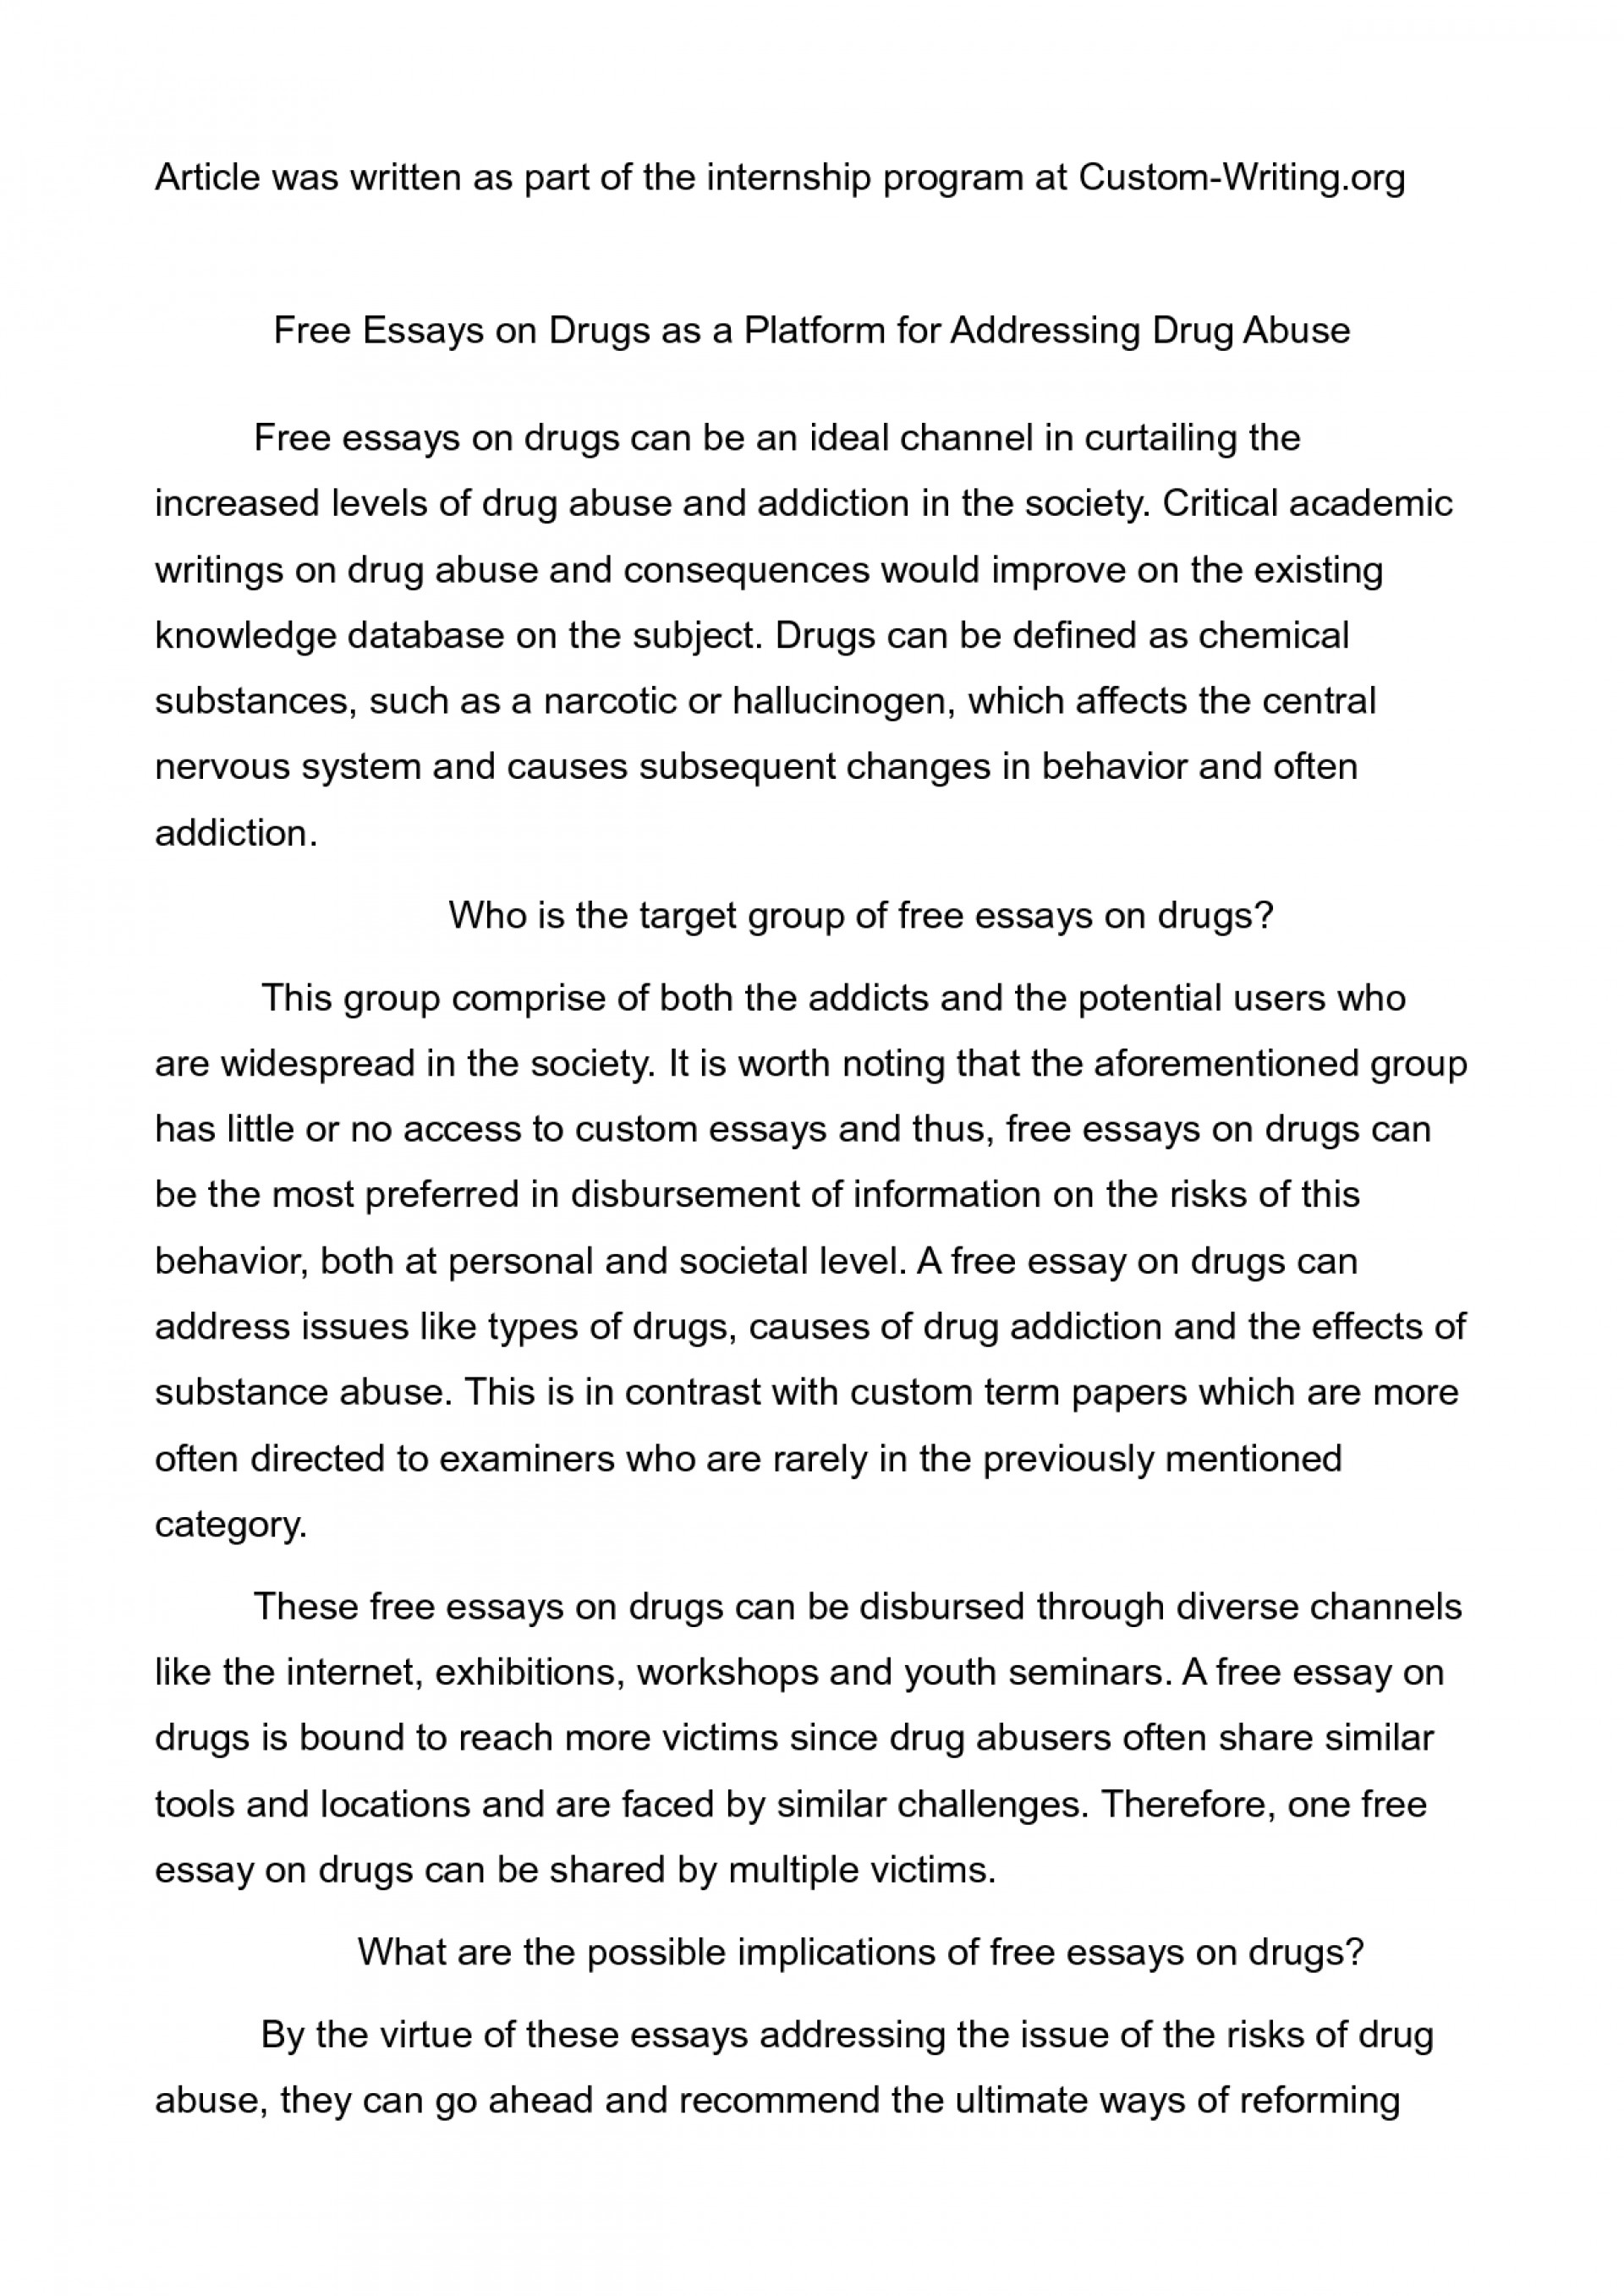 009 Argumentative Essay About Drugs Amazing Definition Pdf Sample Middle School Topics For High 1920